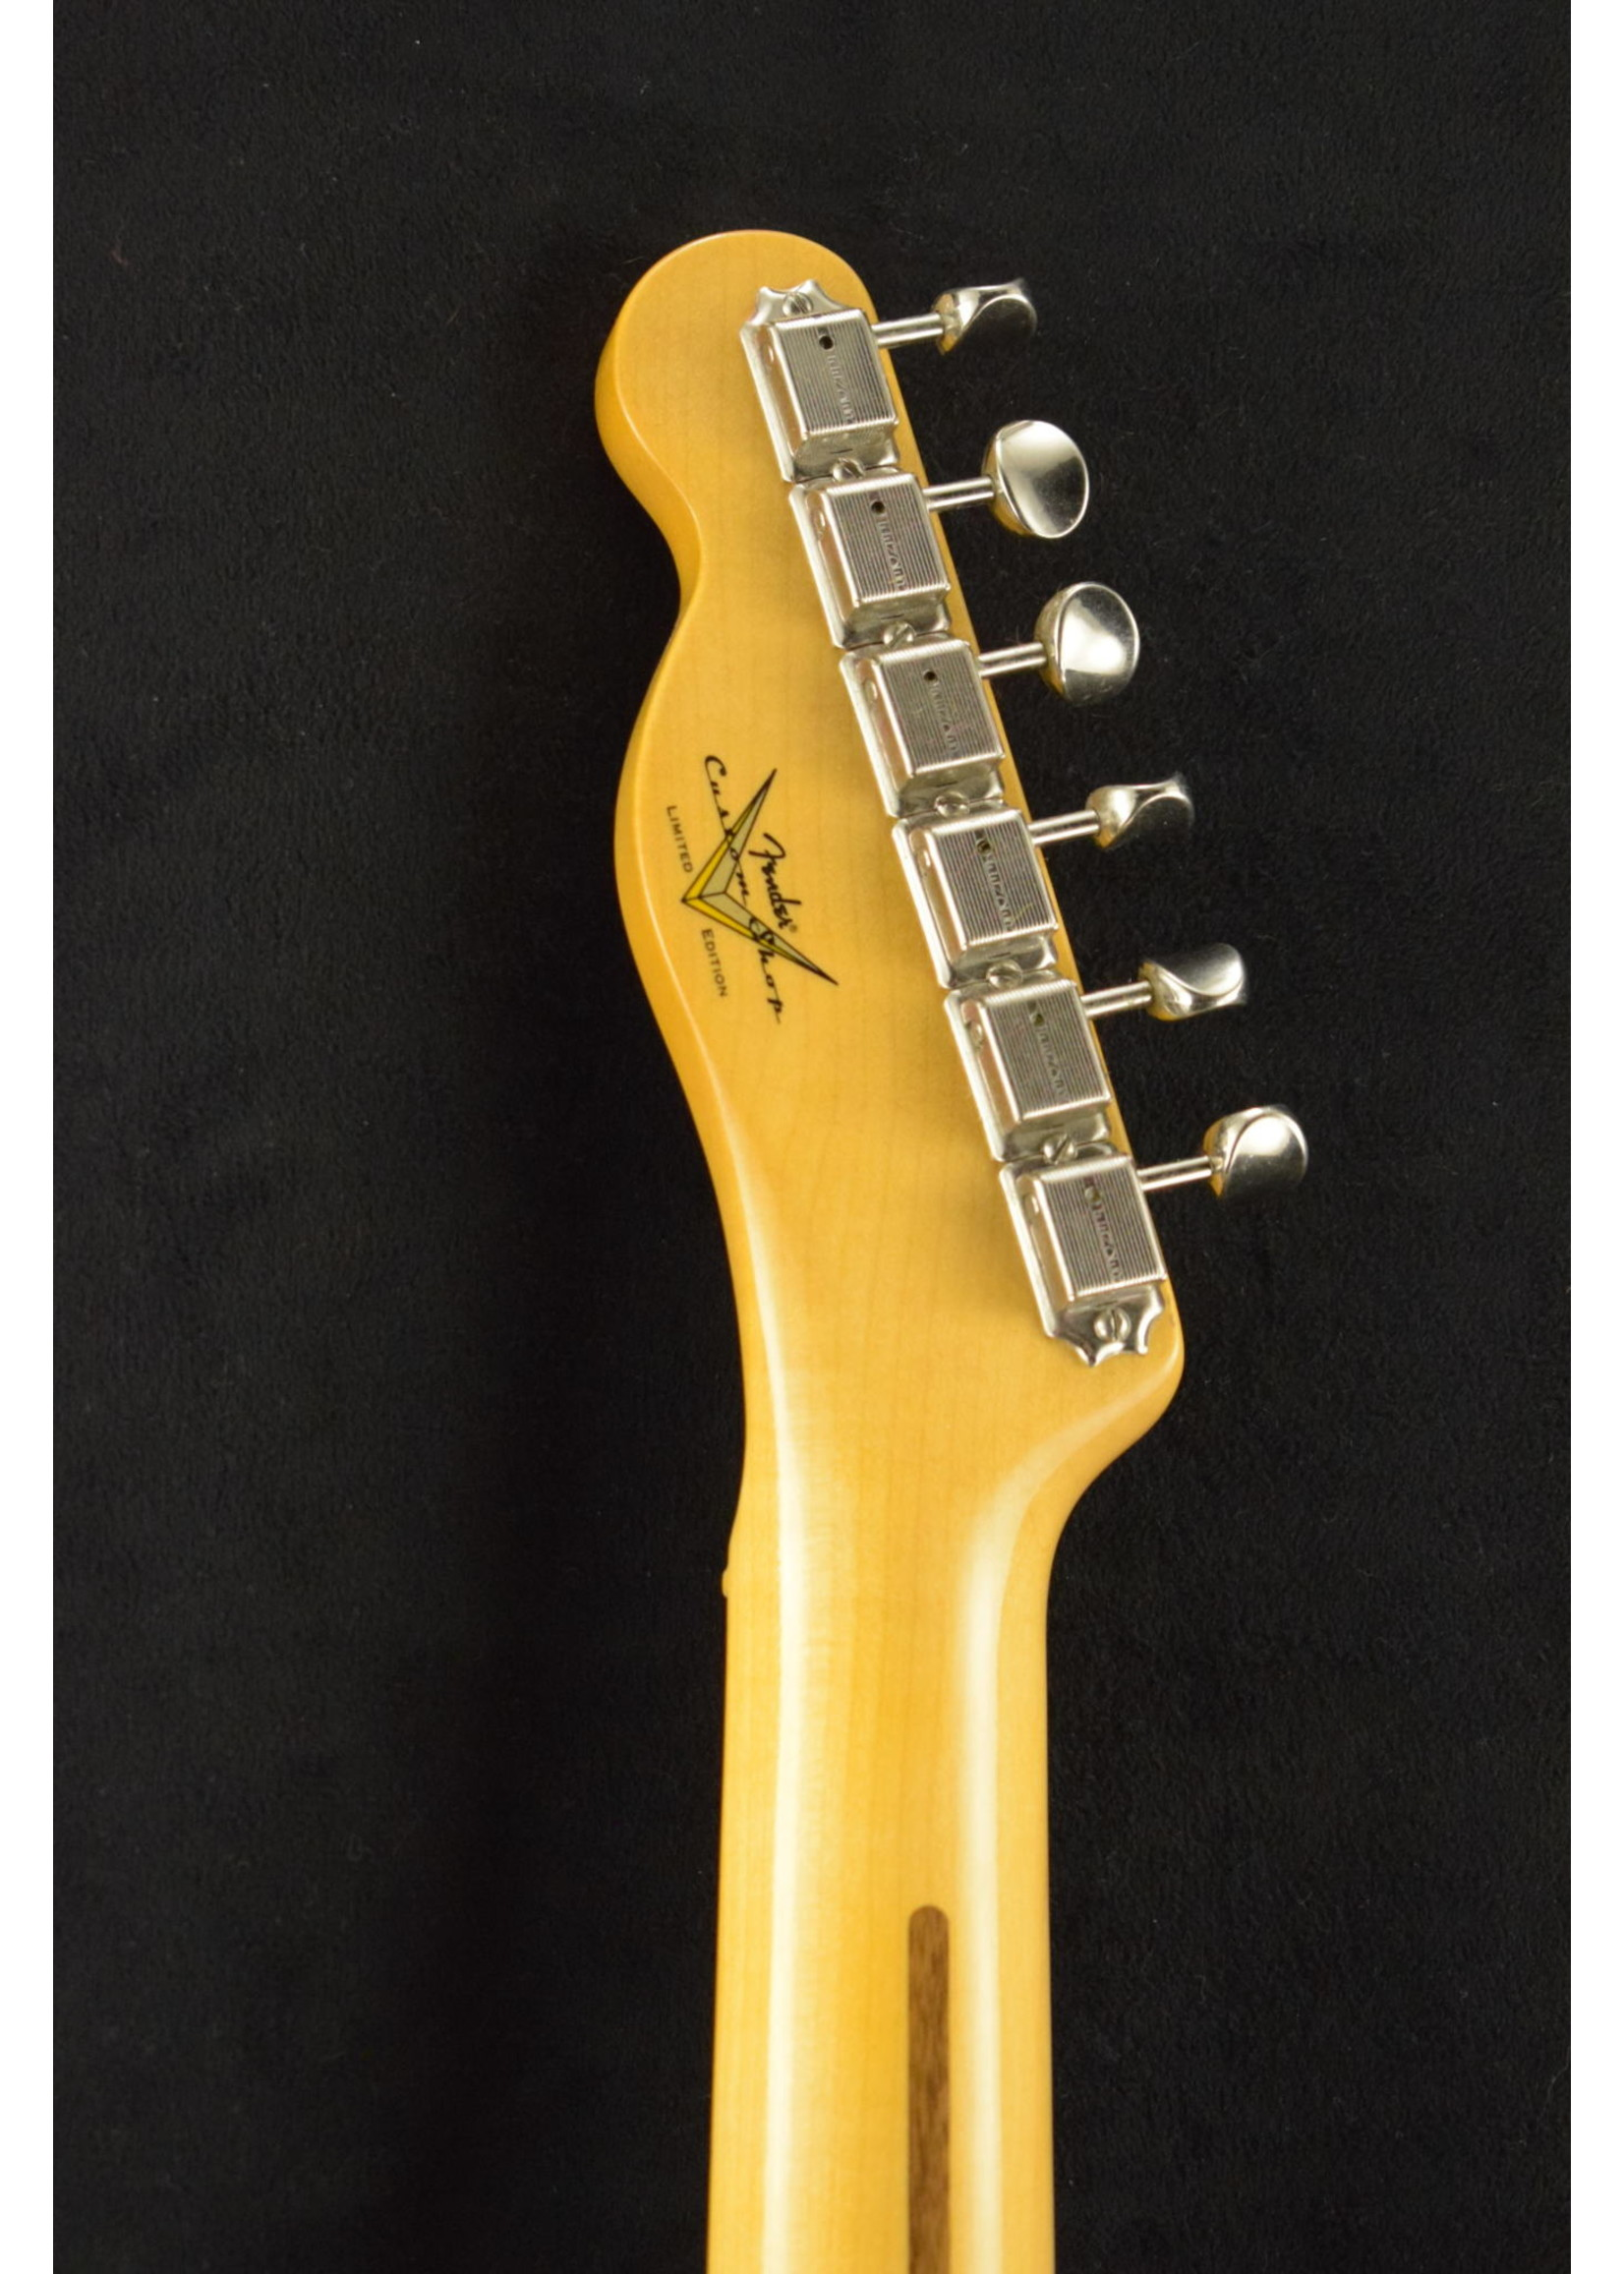 Fender Fender 70th Anniversary Broadcaster Time Capsule Finish Faded Nocaster Blonde